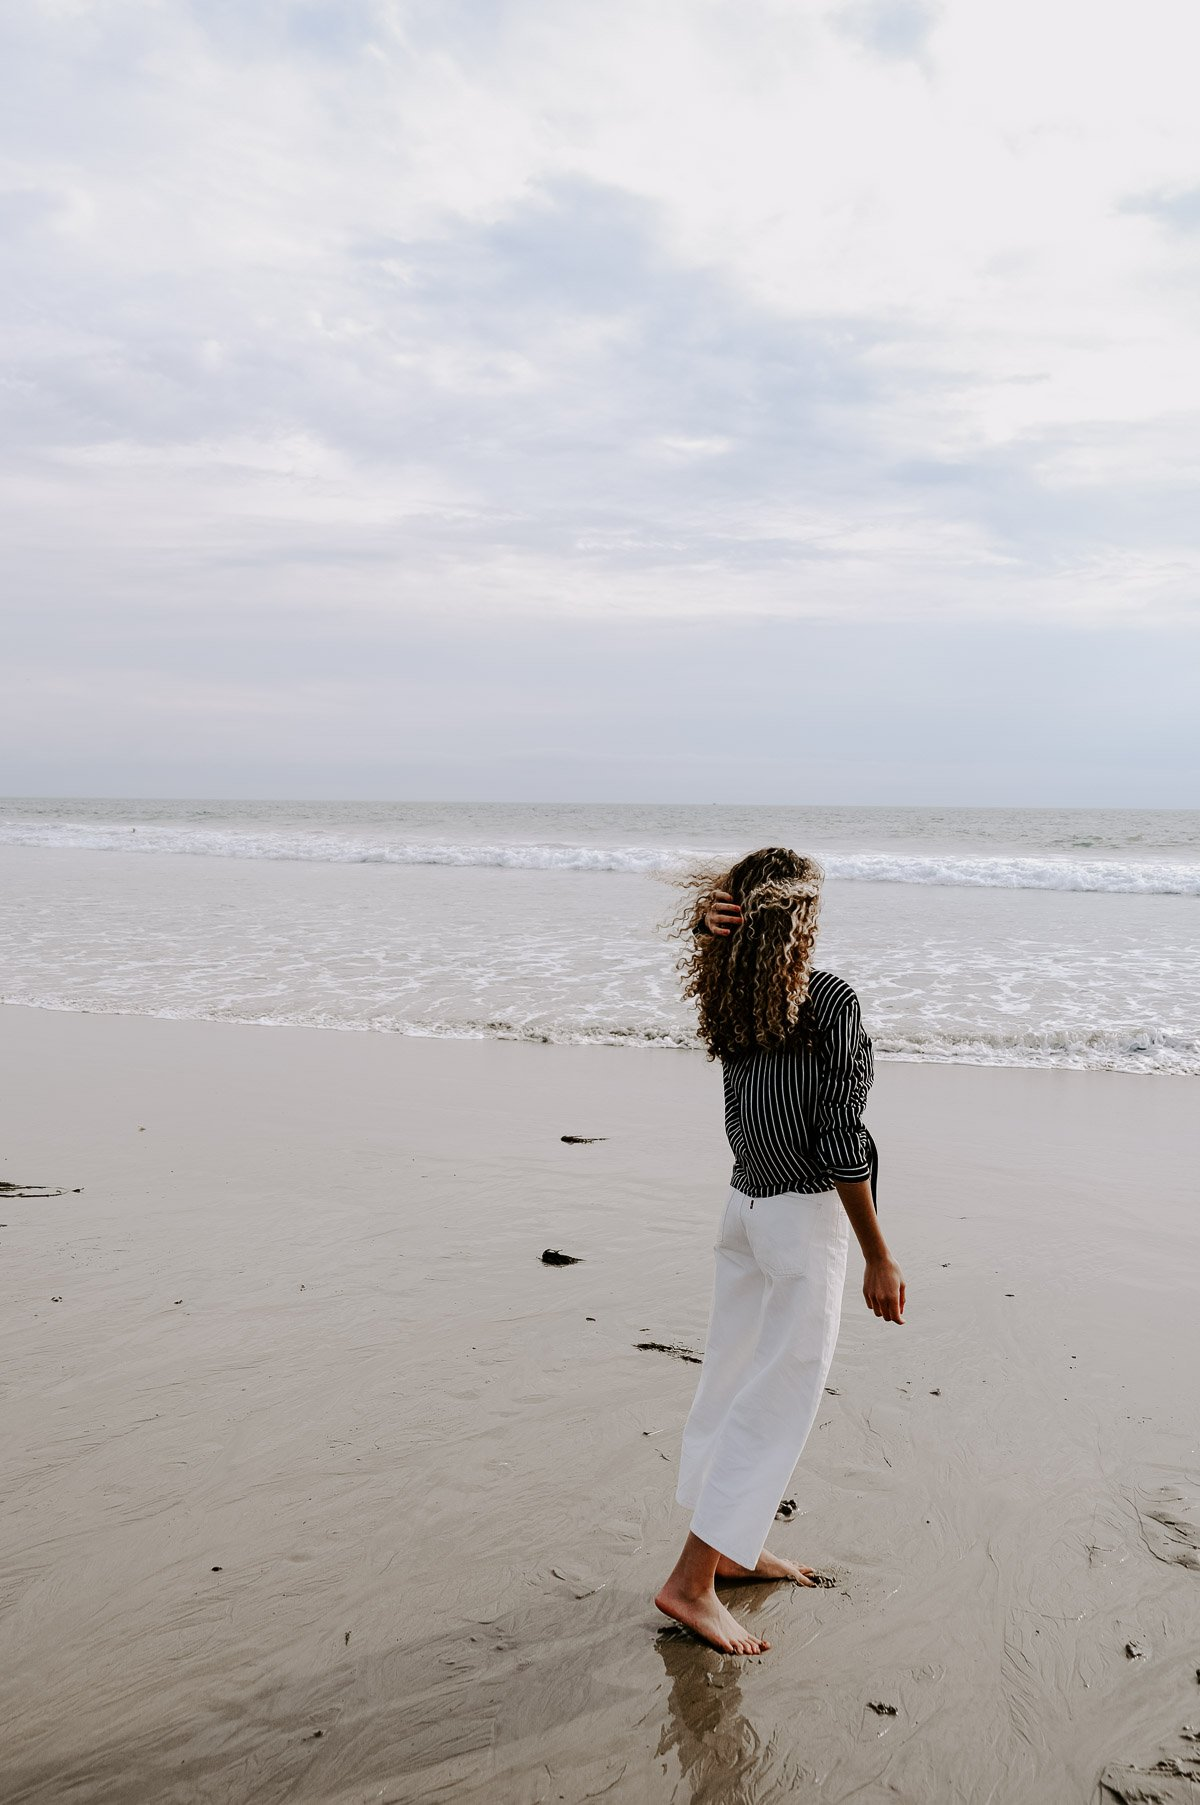 Planning a trip to LA and need to know what to wear? This post has the LA packing essentials that you need for a trip to Los Angeles! No suitcase is complete without an outfit for the beach